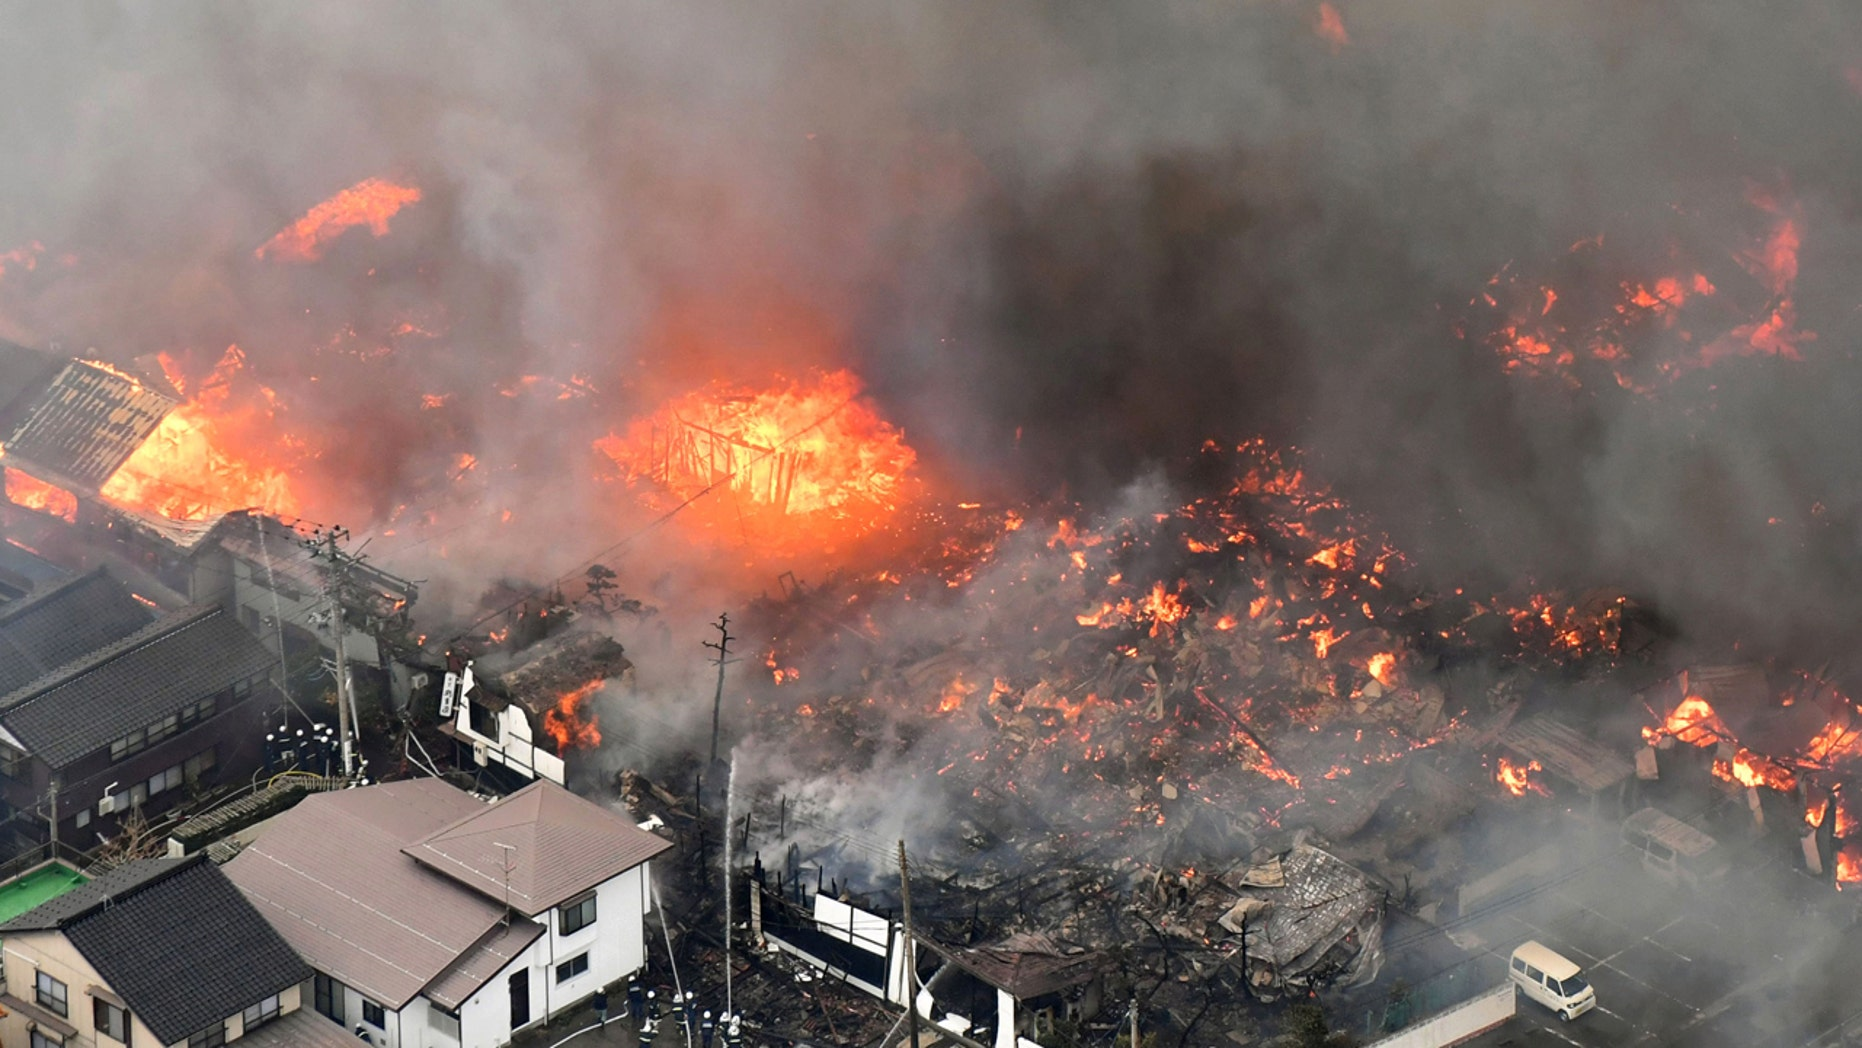 Smoke billow from houses during a fire in Itoigawa, northern Japan, Thursday, Dec. 22, 2016.